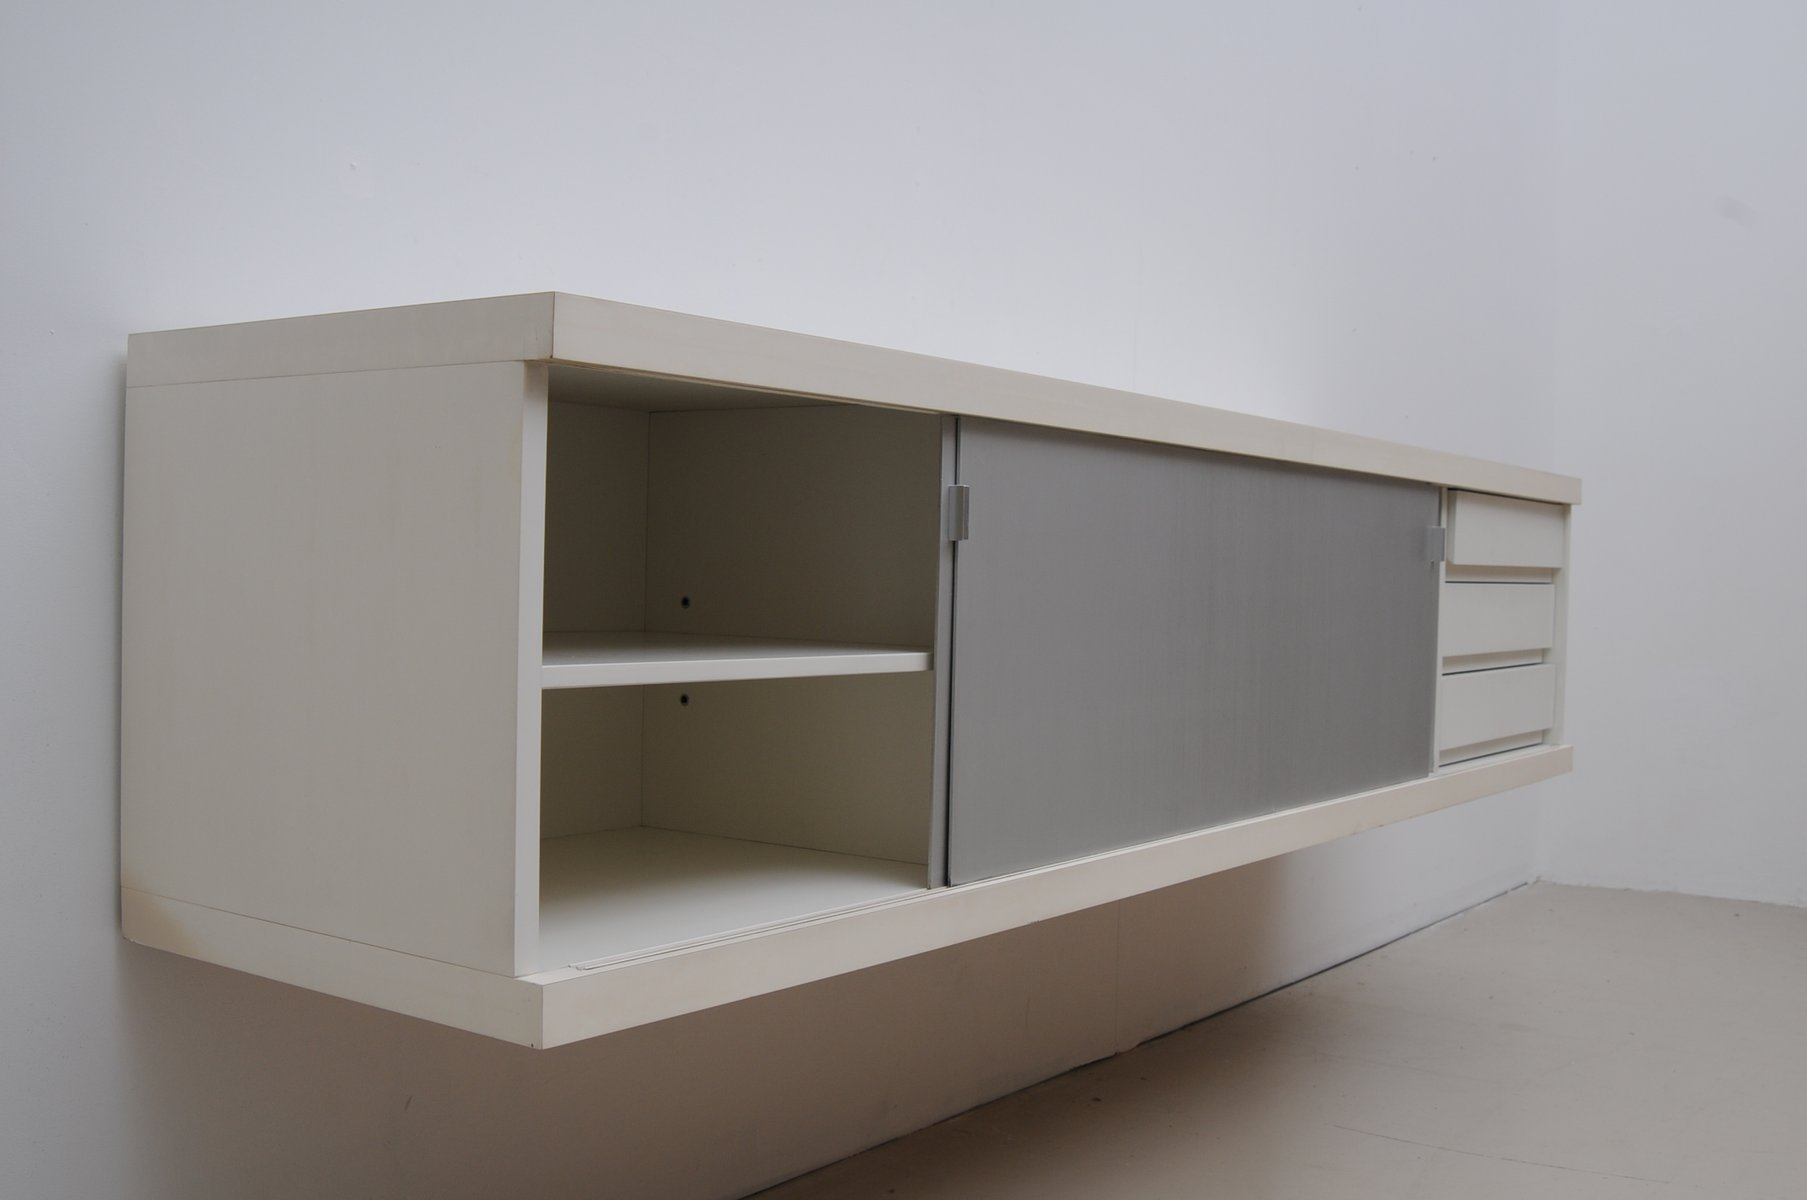 Horst Brüning Mid-century Floating Sideboard By Horst Brüning For Behr